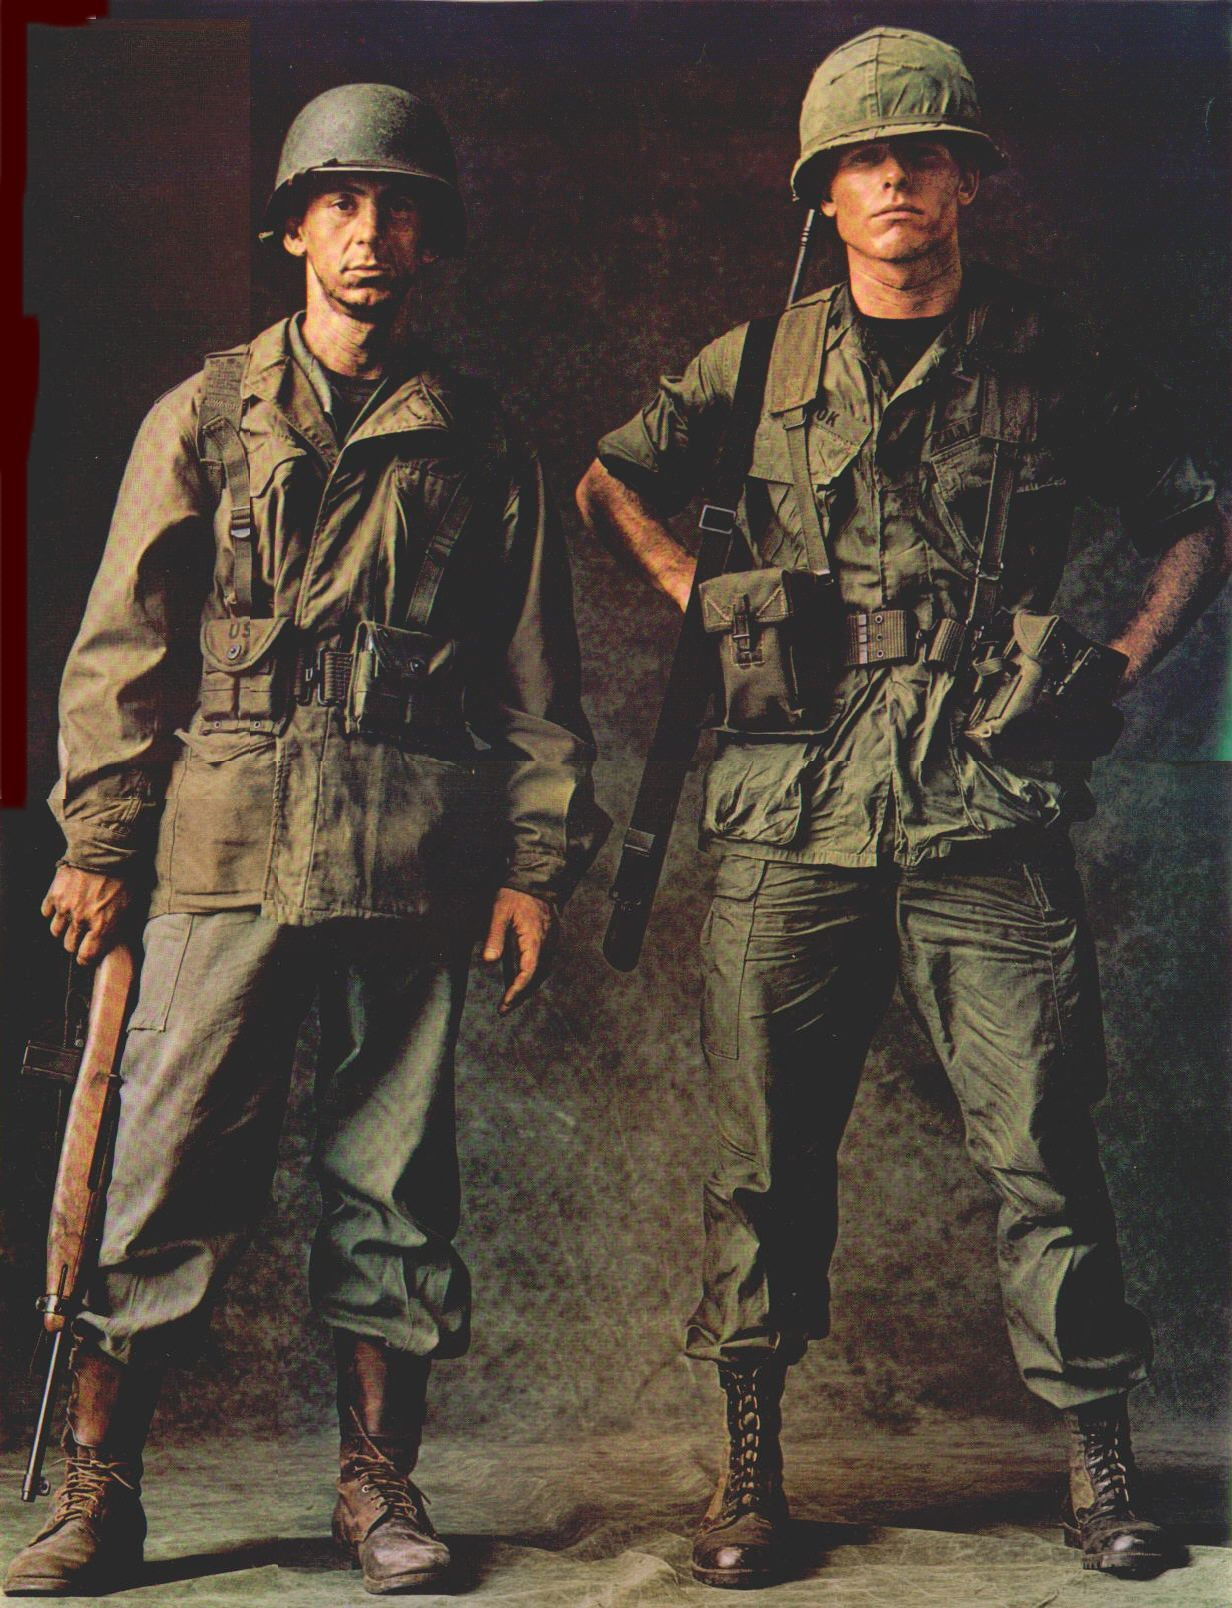 us soldiers in vietnam essay Us soldiers call for a medical evacuation in vietnam no war is easy for those who fight it and each conflict brings its own challenges soldiers in the vietnam war endured many hardships and faced many problems, some of them seemingly insurmountable.